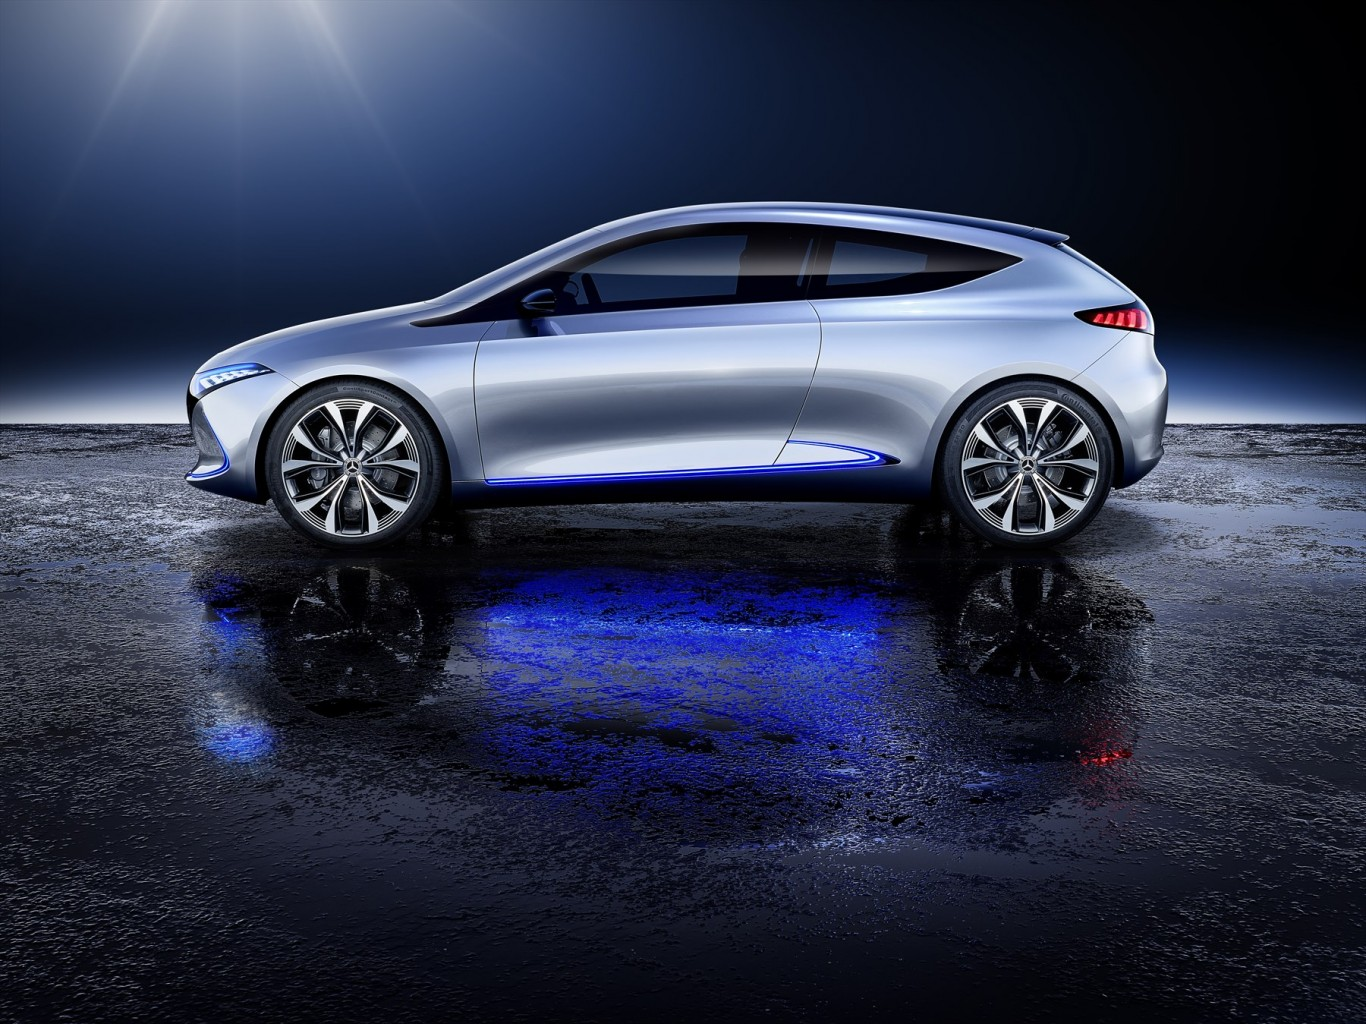 The Concept EQA is Mercedes-Benz's first  all-electric EQ concept vehicle in the compact segment.